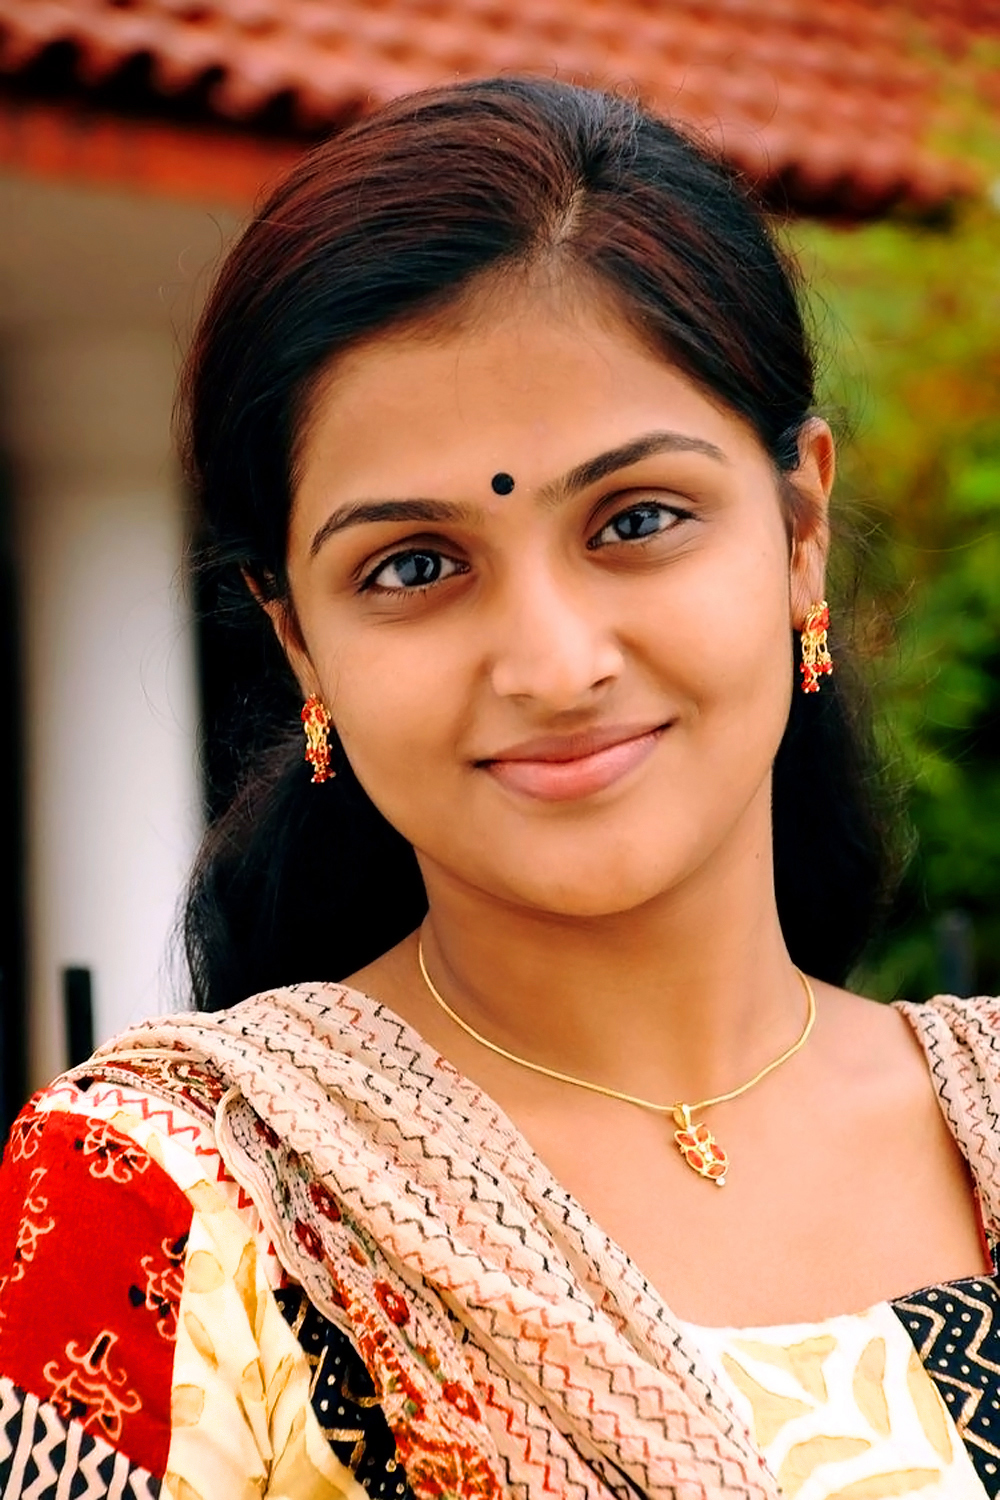 ramya nambeesan close up high quality photo | hq photo plus